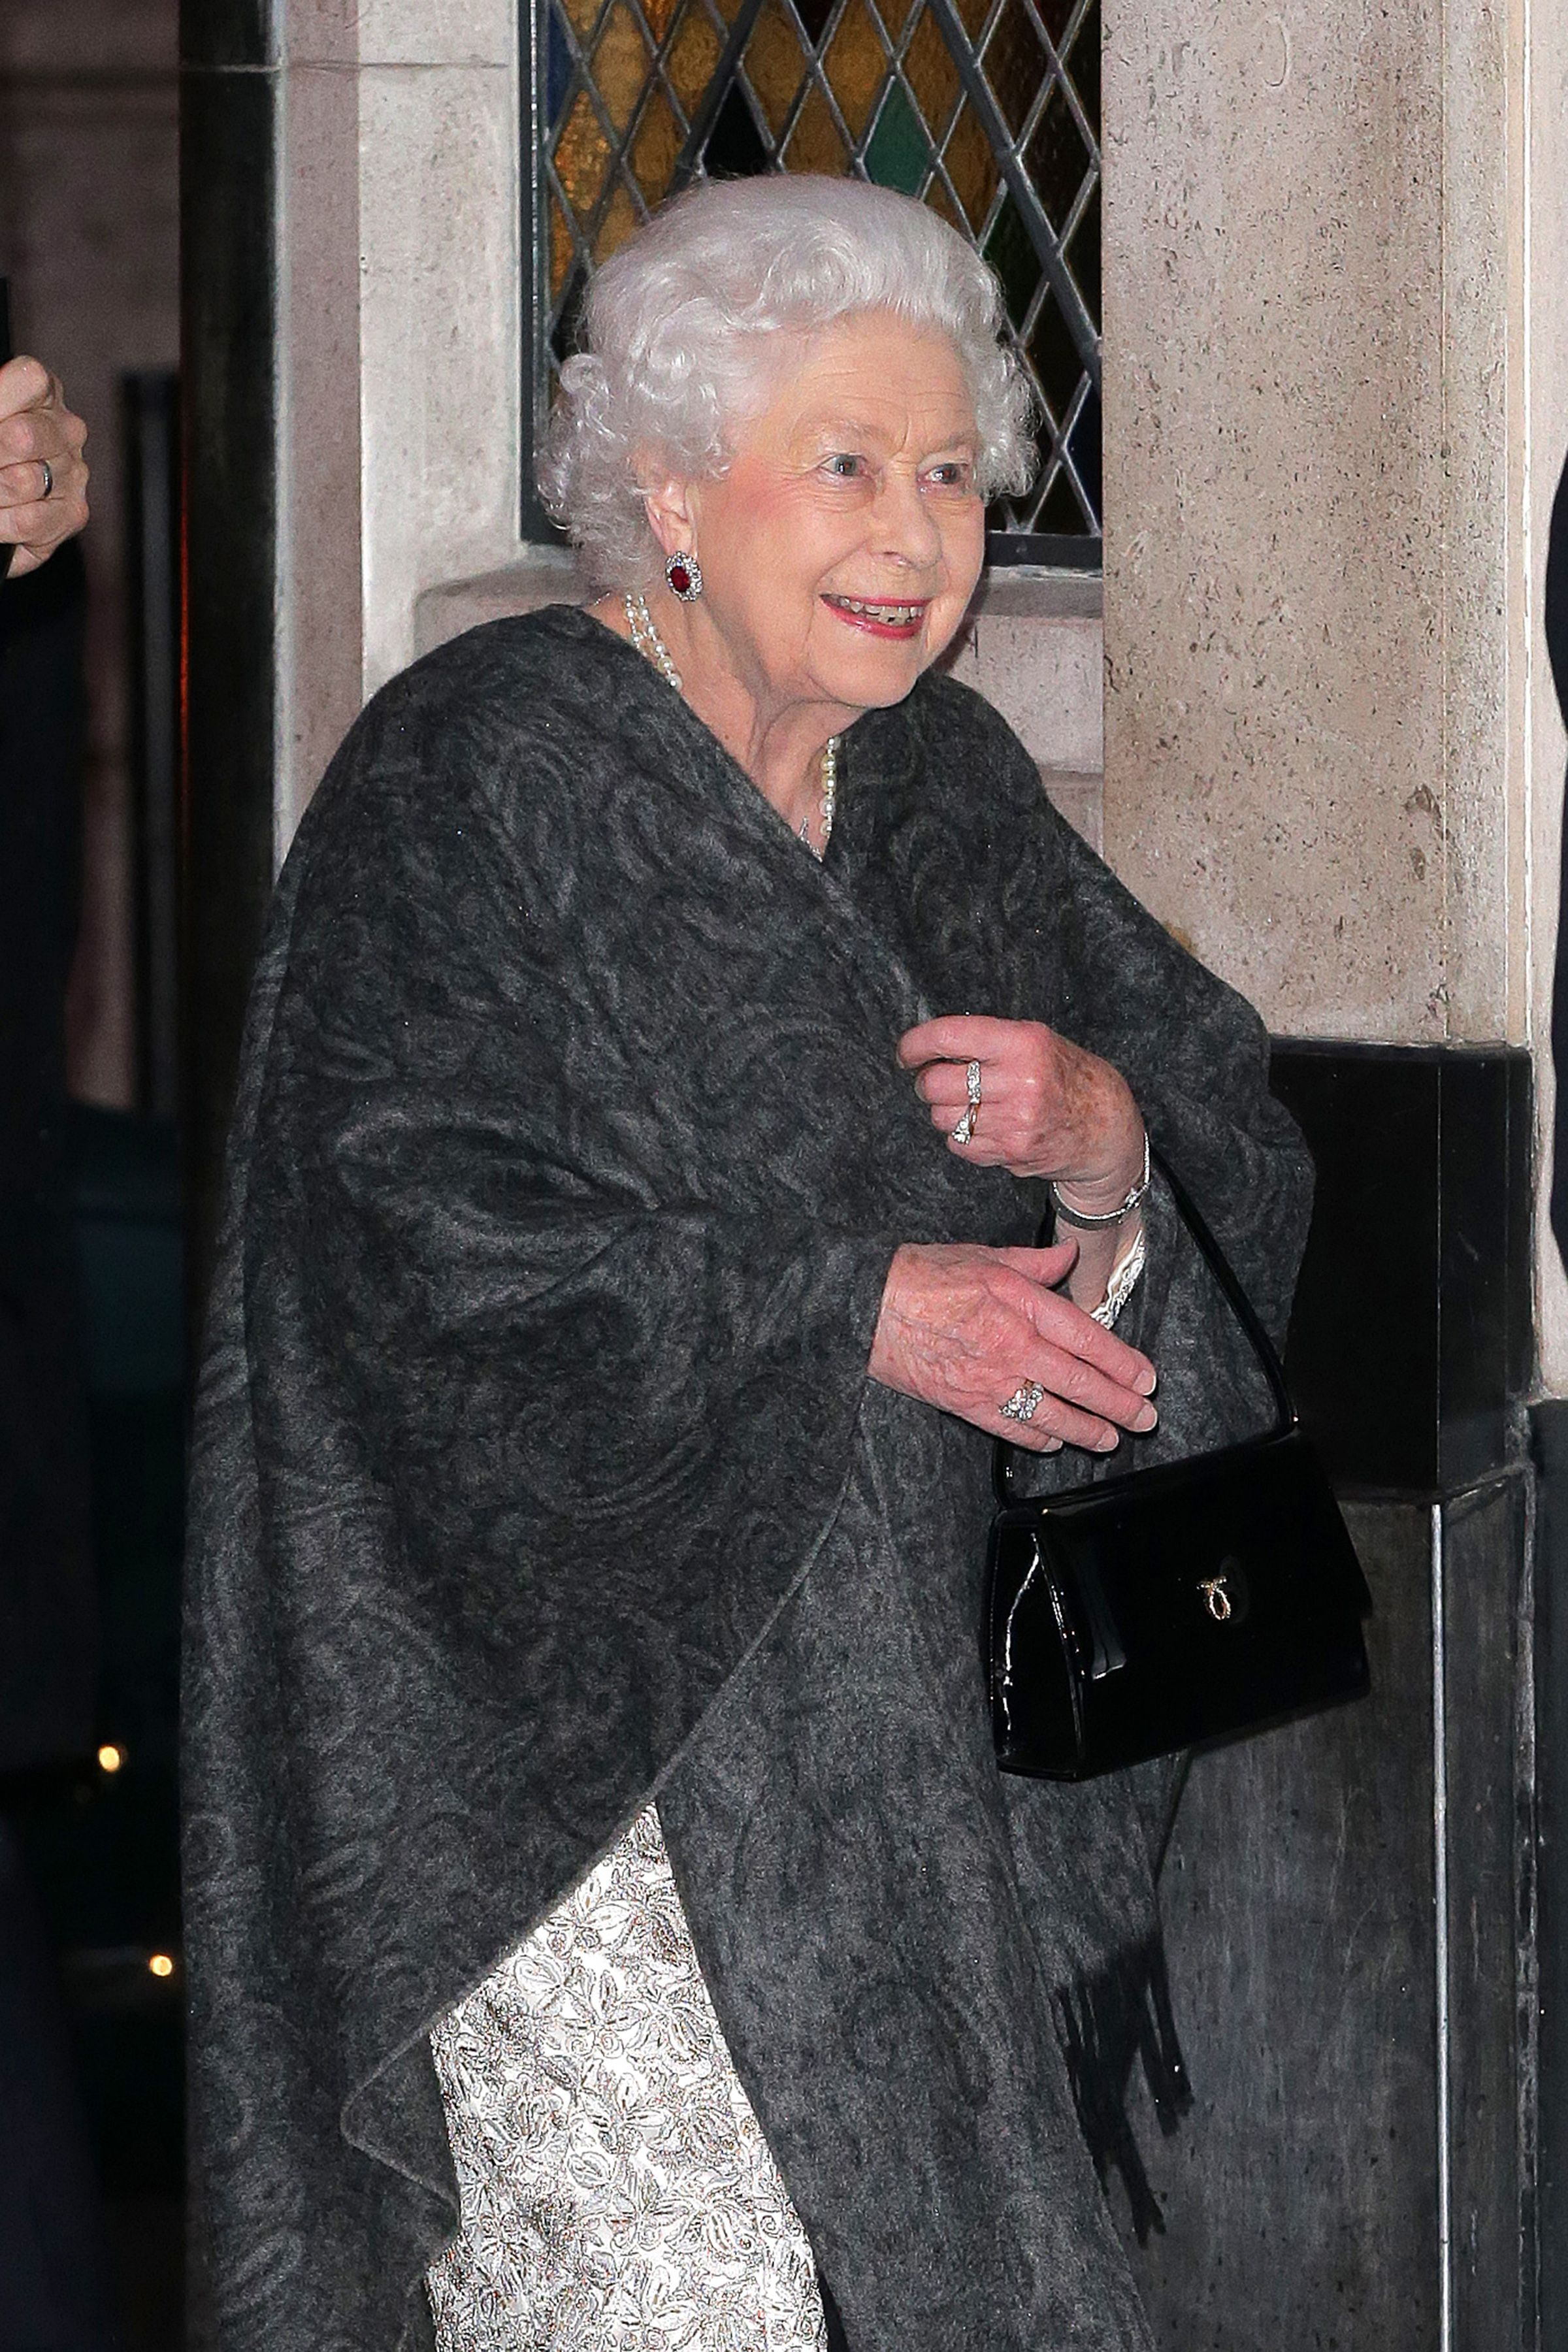 The Queen enjoys a rare night out at The Ivy in central London